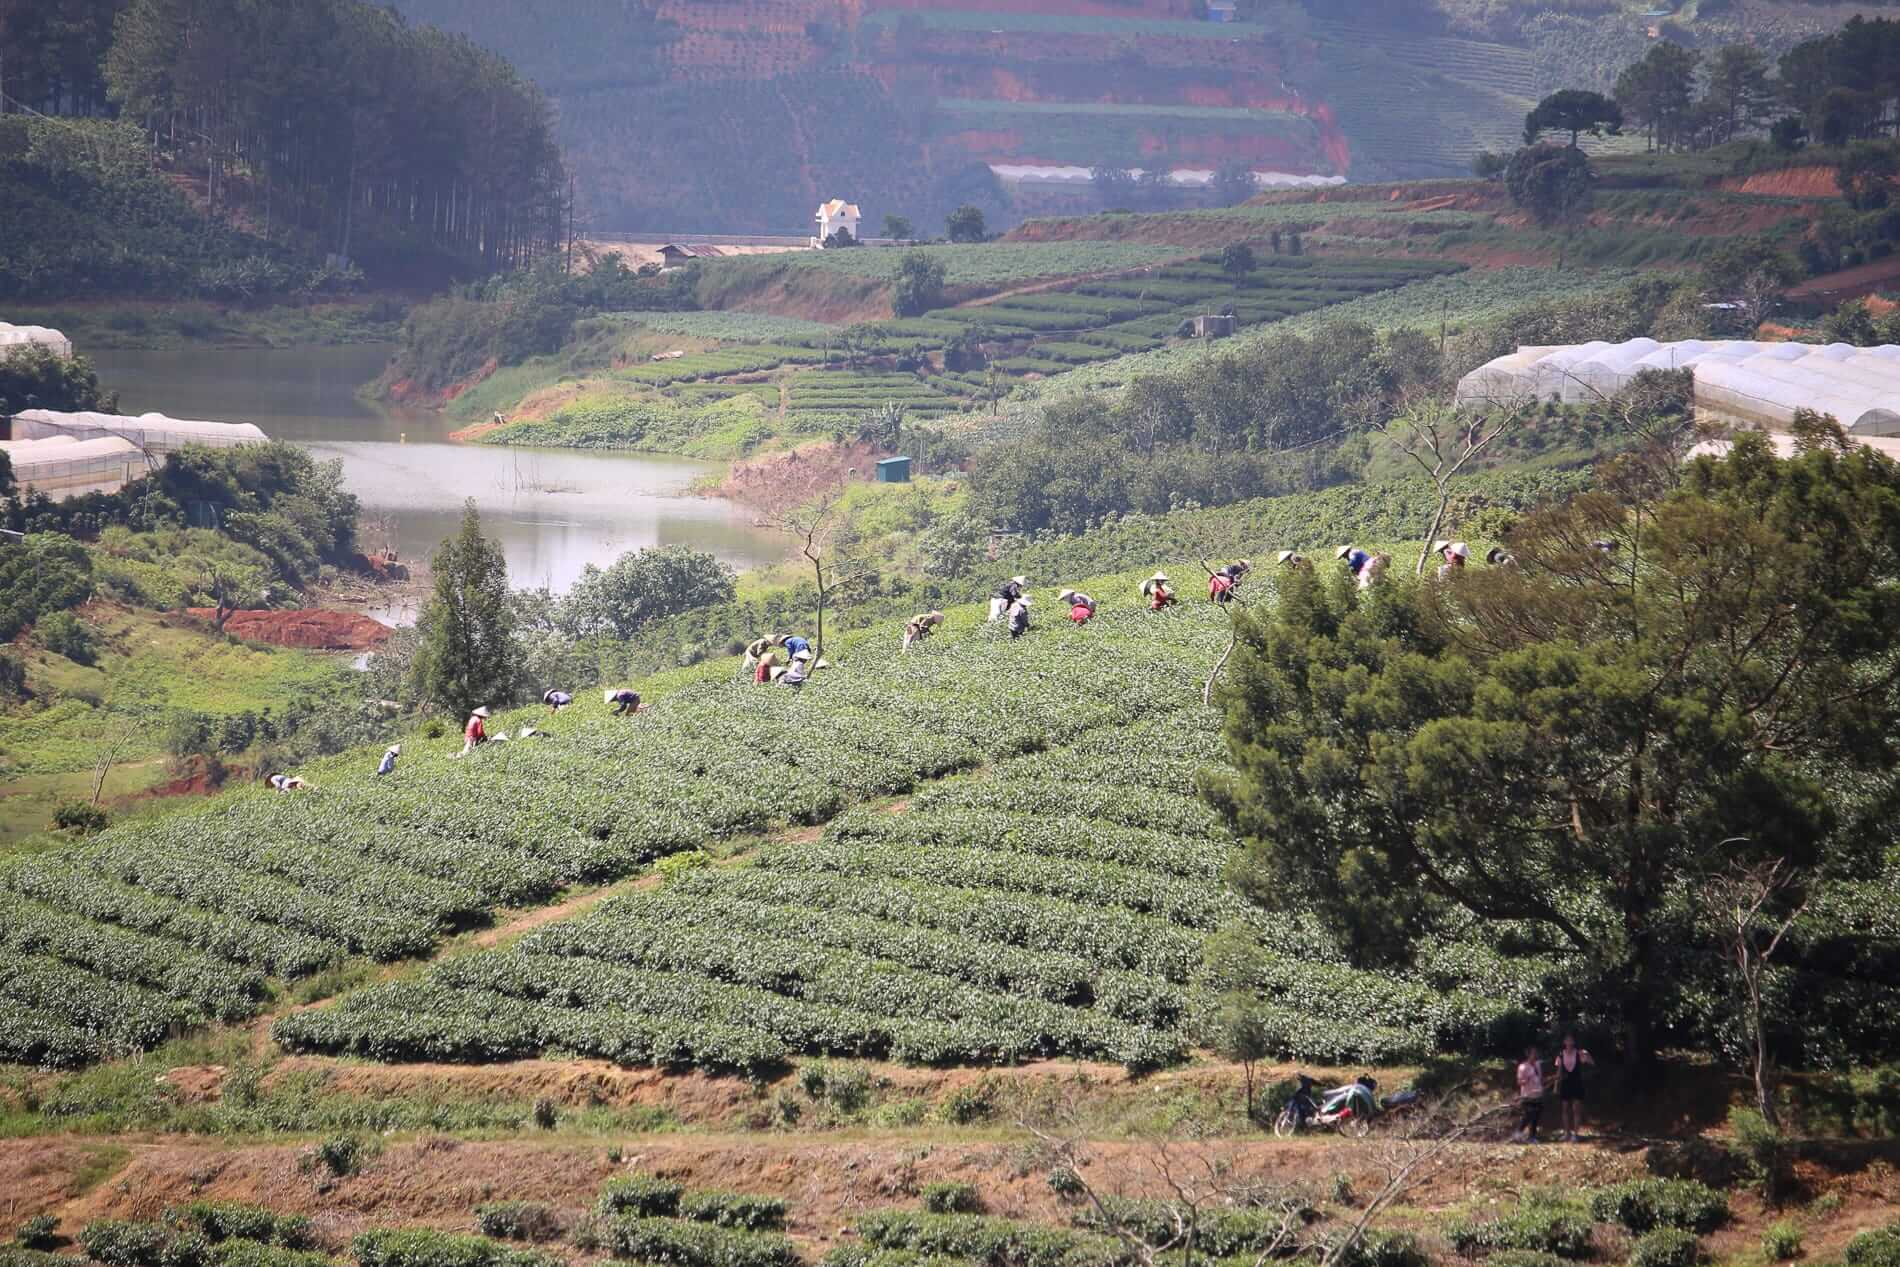 Workers harvest coffee beans on the hills at Da Lat